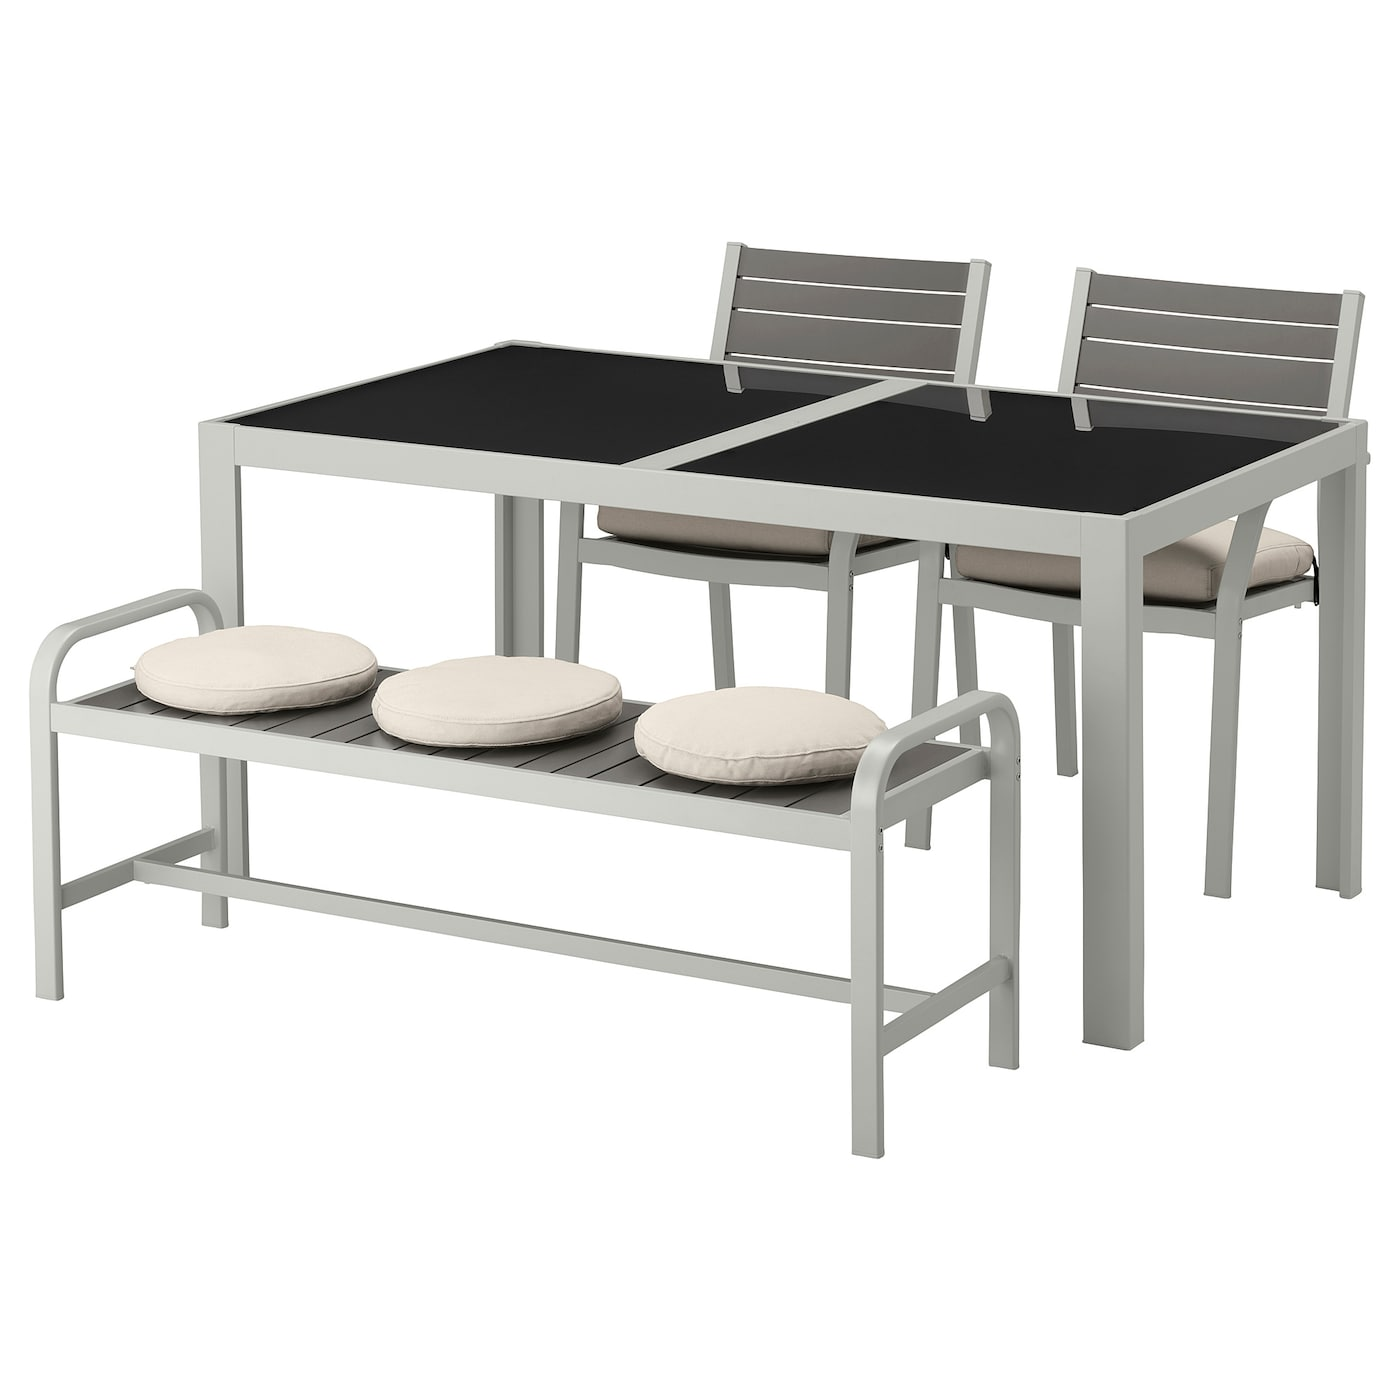 IKEA SJÄLLAND table+2 chairs+ bench, outdoor Easy to keep clean – just wipe with a damp cloth.